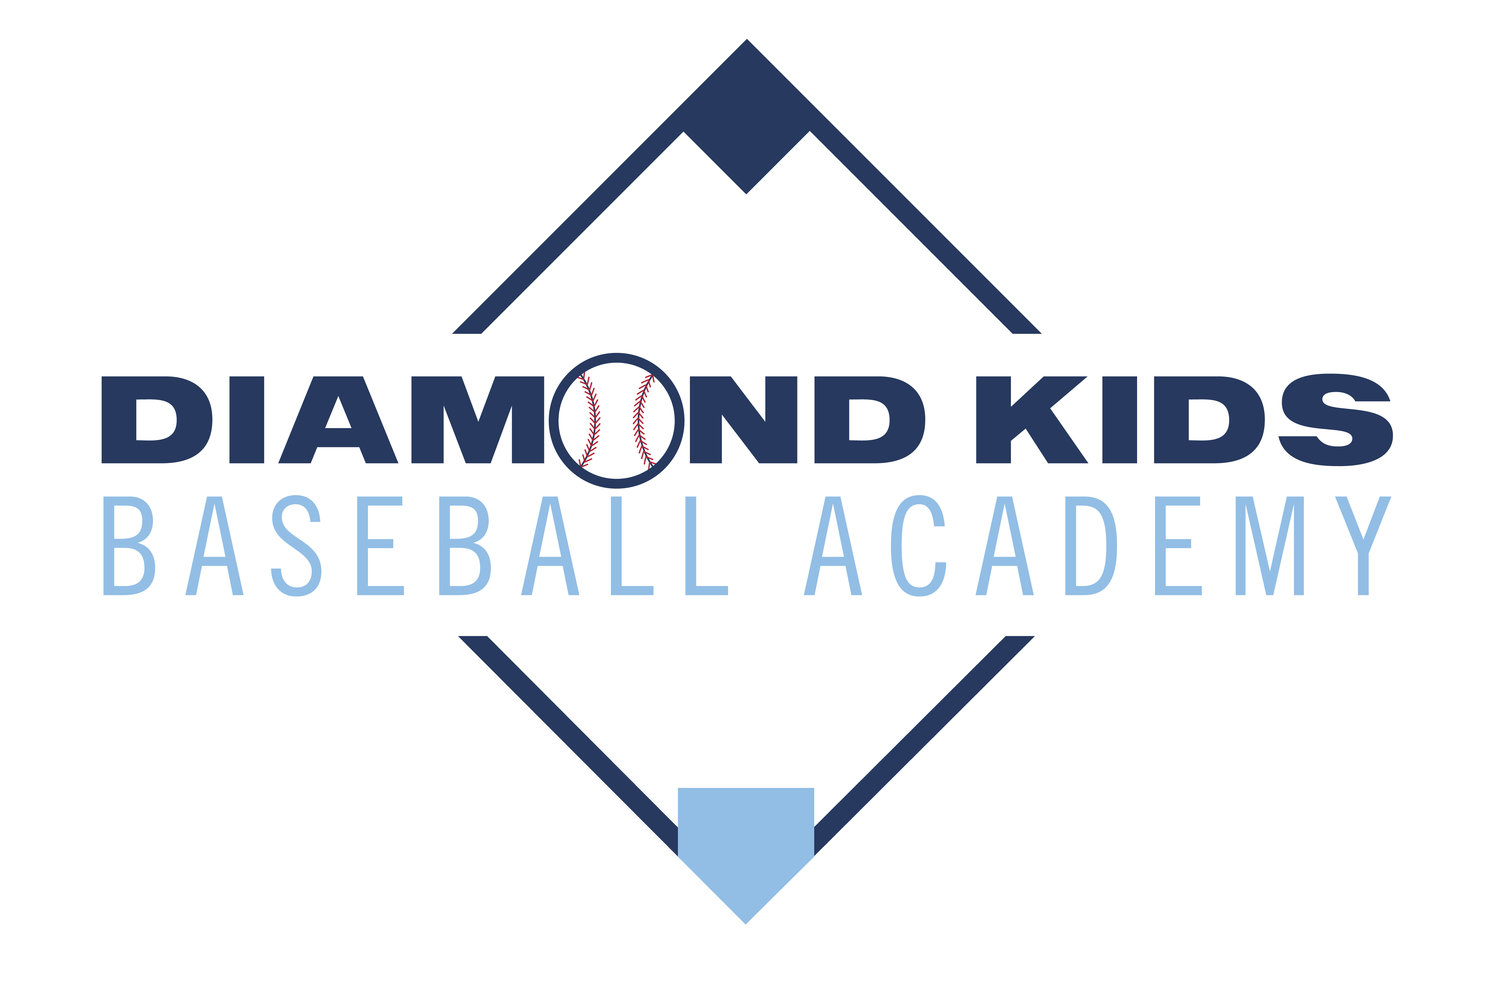 Diamond Kids Baseball Academy